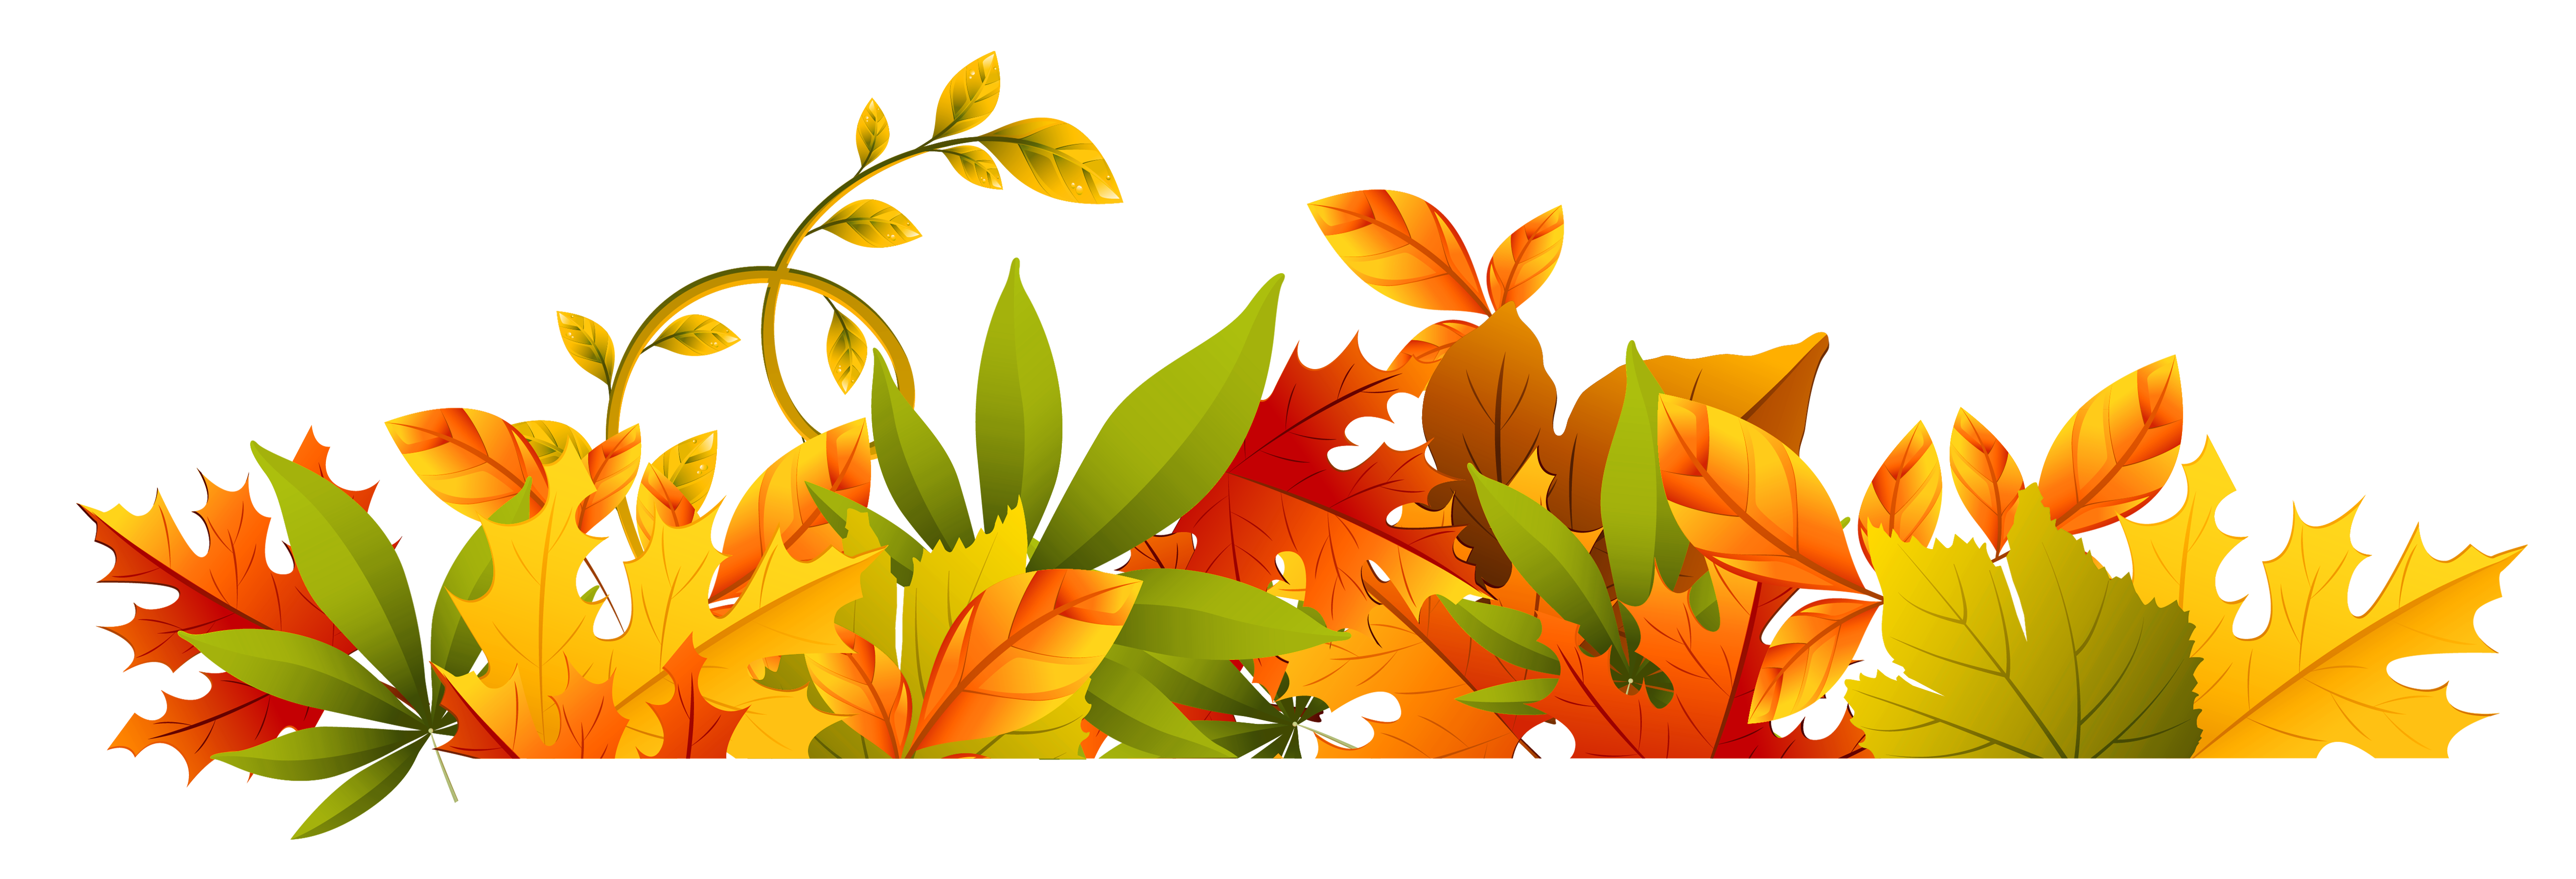 Free clipart leaves border. Autumn download best on